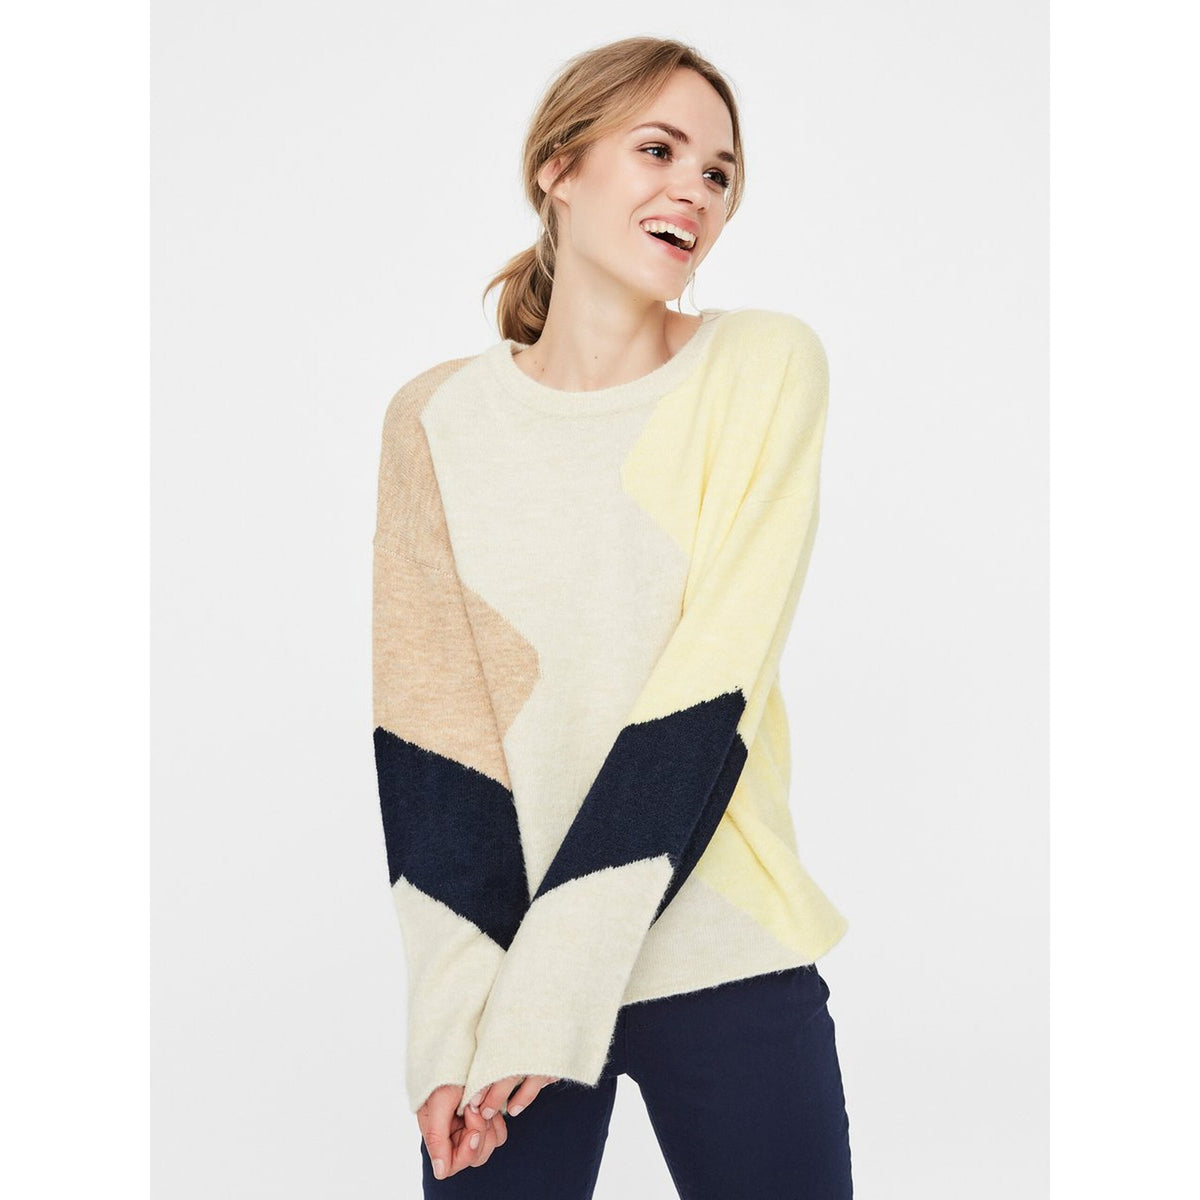 Vero Moda Printed Knitted Pullover The Cope